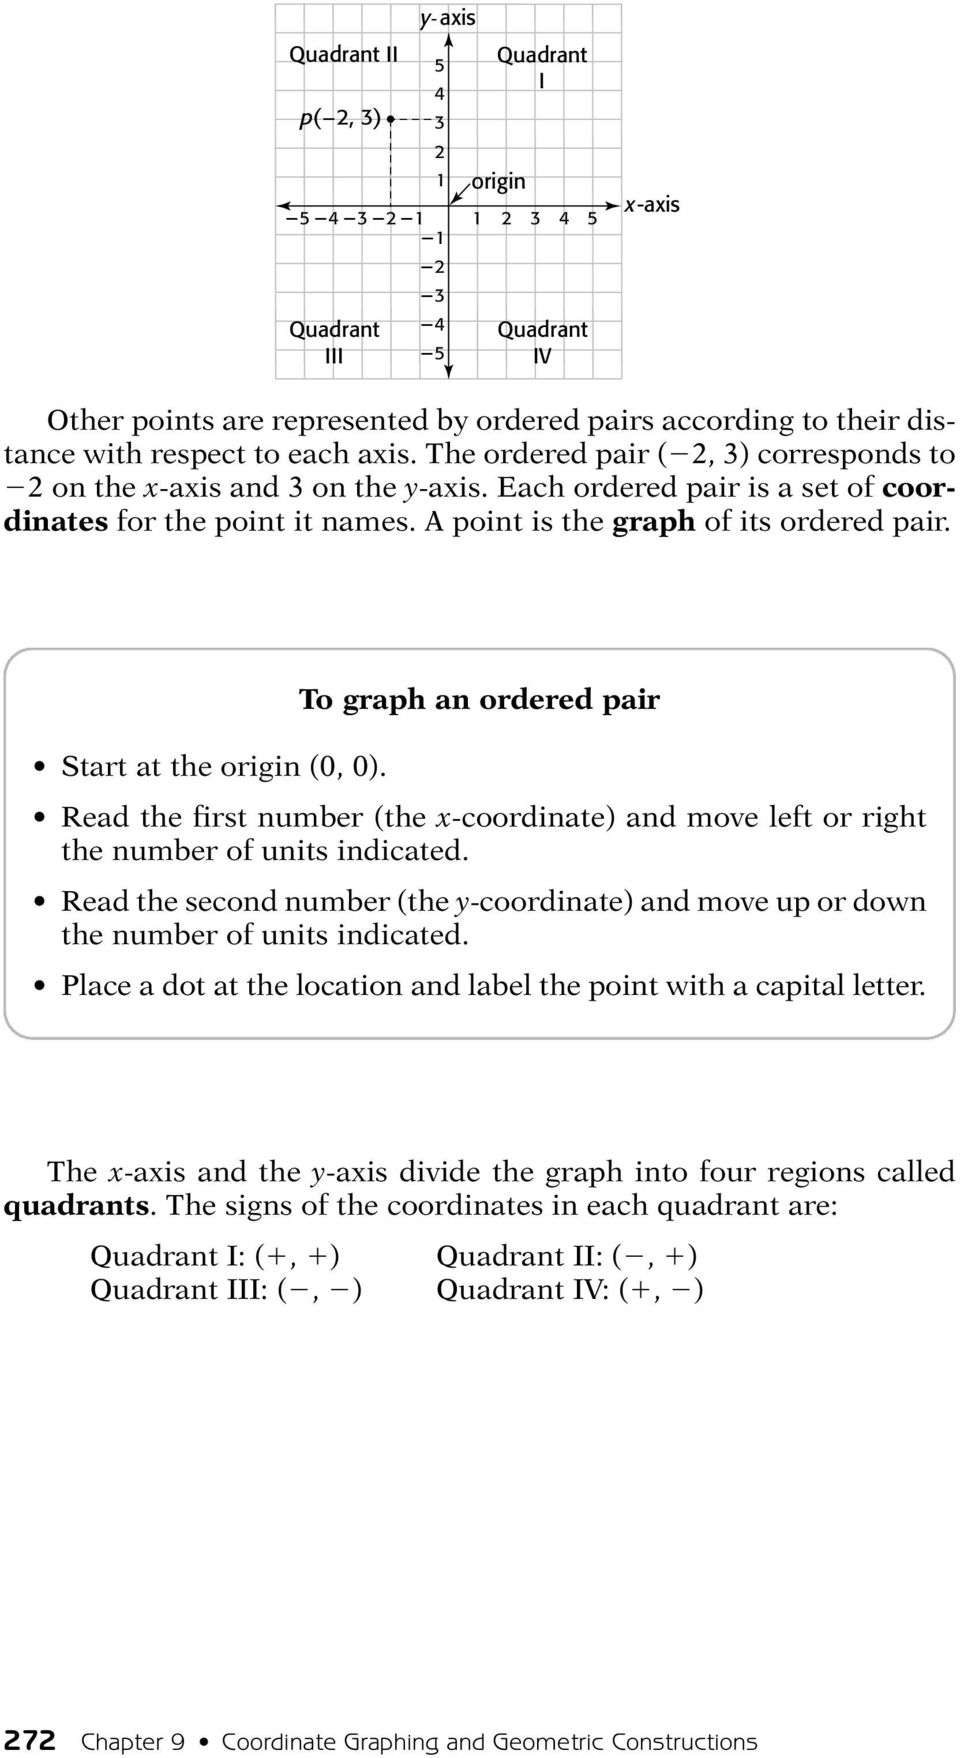 To graph an ordered pair Read the first number (the -coordinate) and move left or right the number of units indicated.